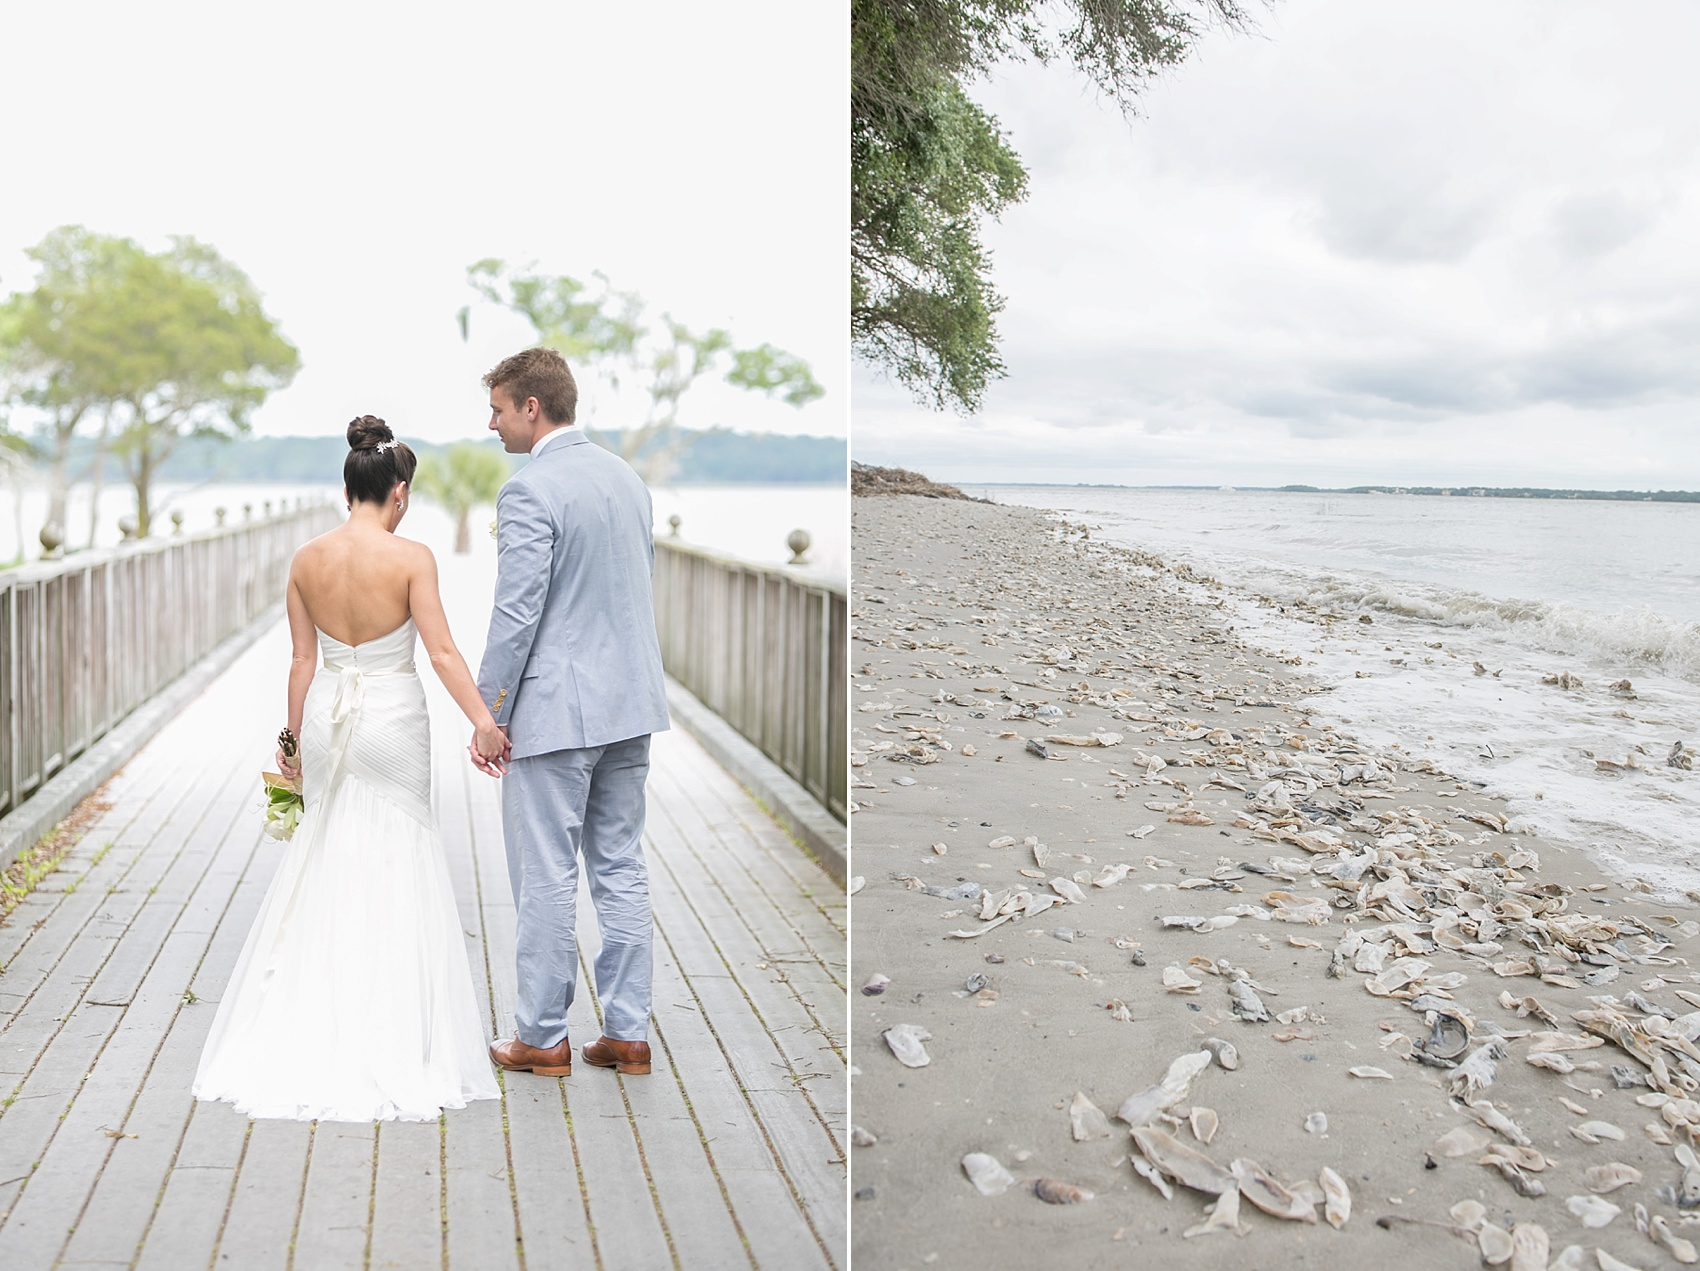 Bride and groom waterfront photos in Haig Point, South Carolina, off the coast of Hilton Head. Photos by Mikkel Paige Photography. Oyster shells simply wash up on the shore here!